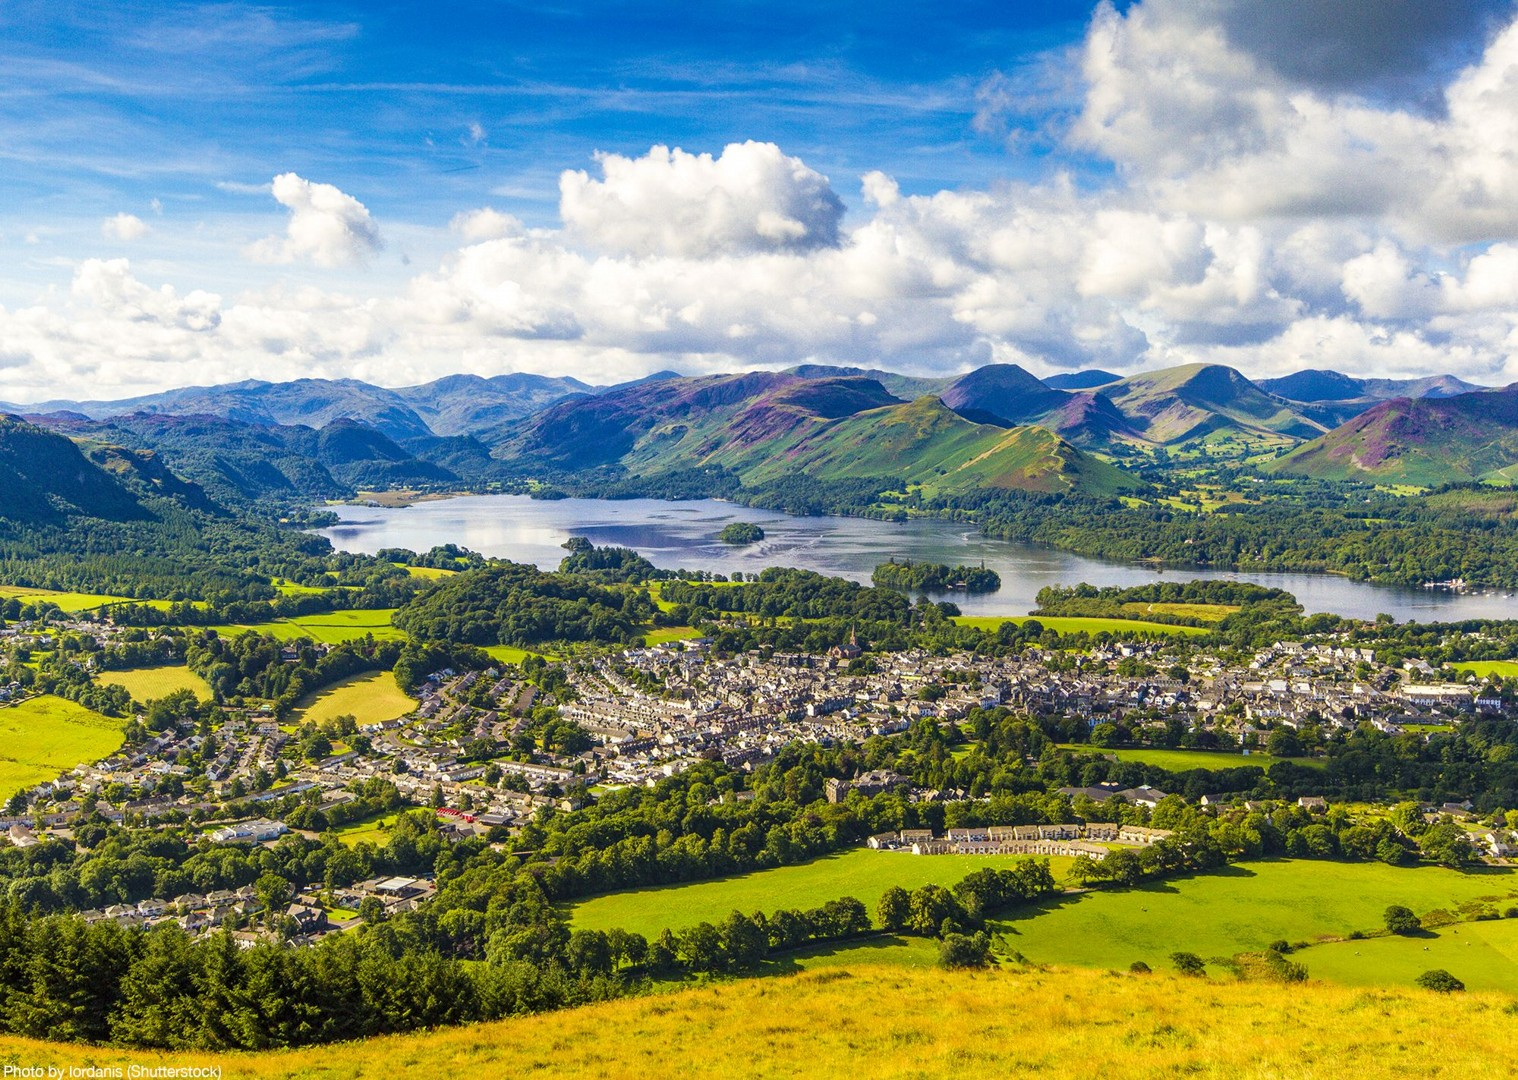 derwent-bank-keswick-hills-leisure-lakes-cycling-local-villages.jpg - UK - Lake District - Derwent Water - Guided Leisure Cycling Holiday - Leisure Cycling